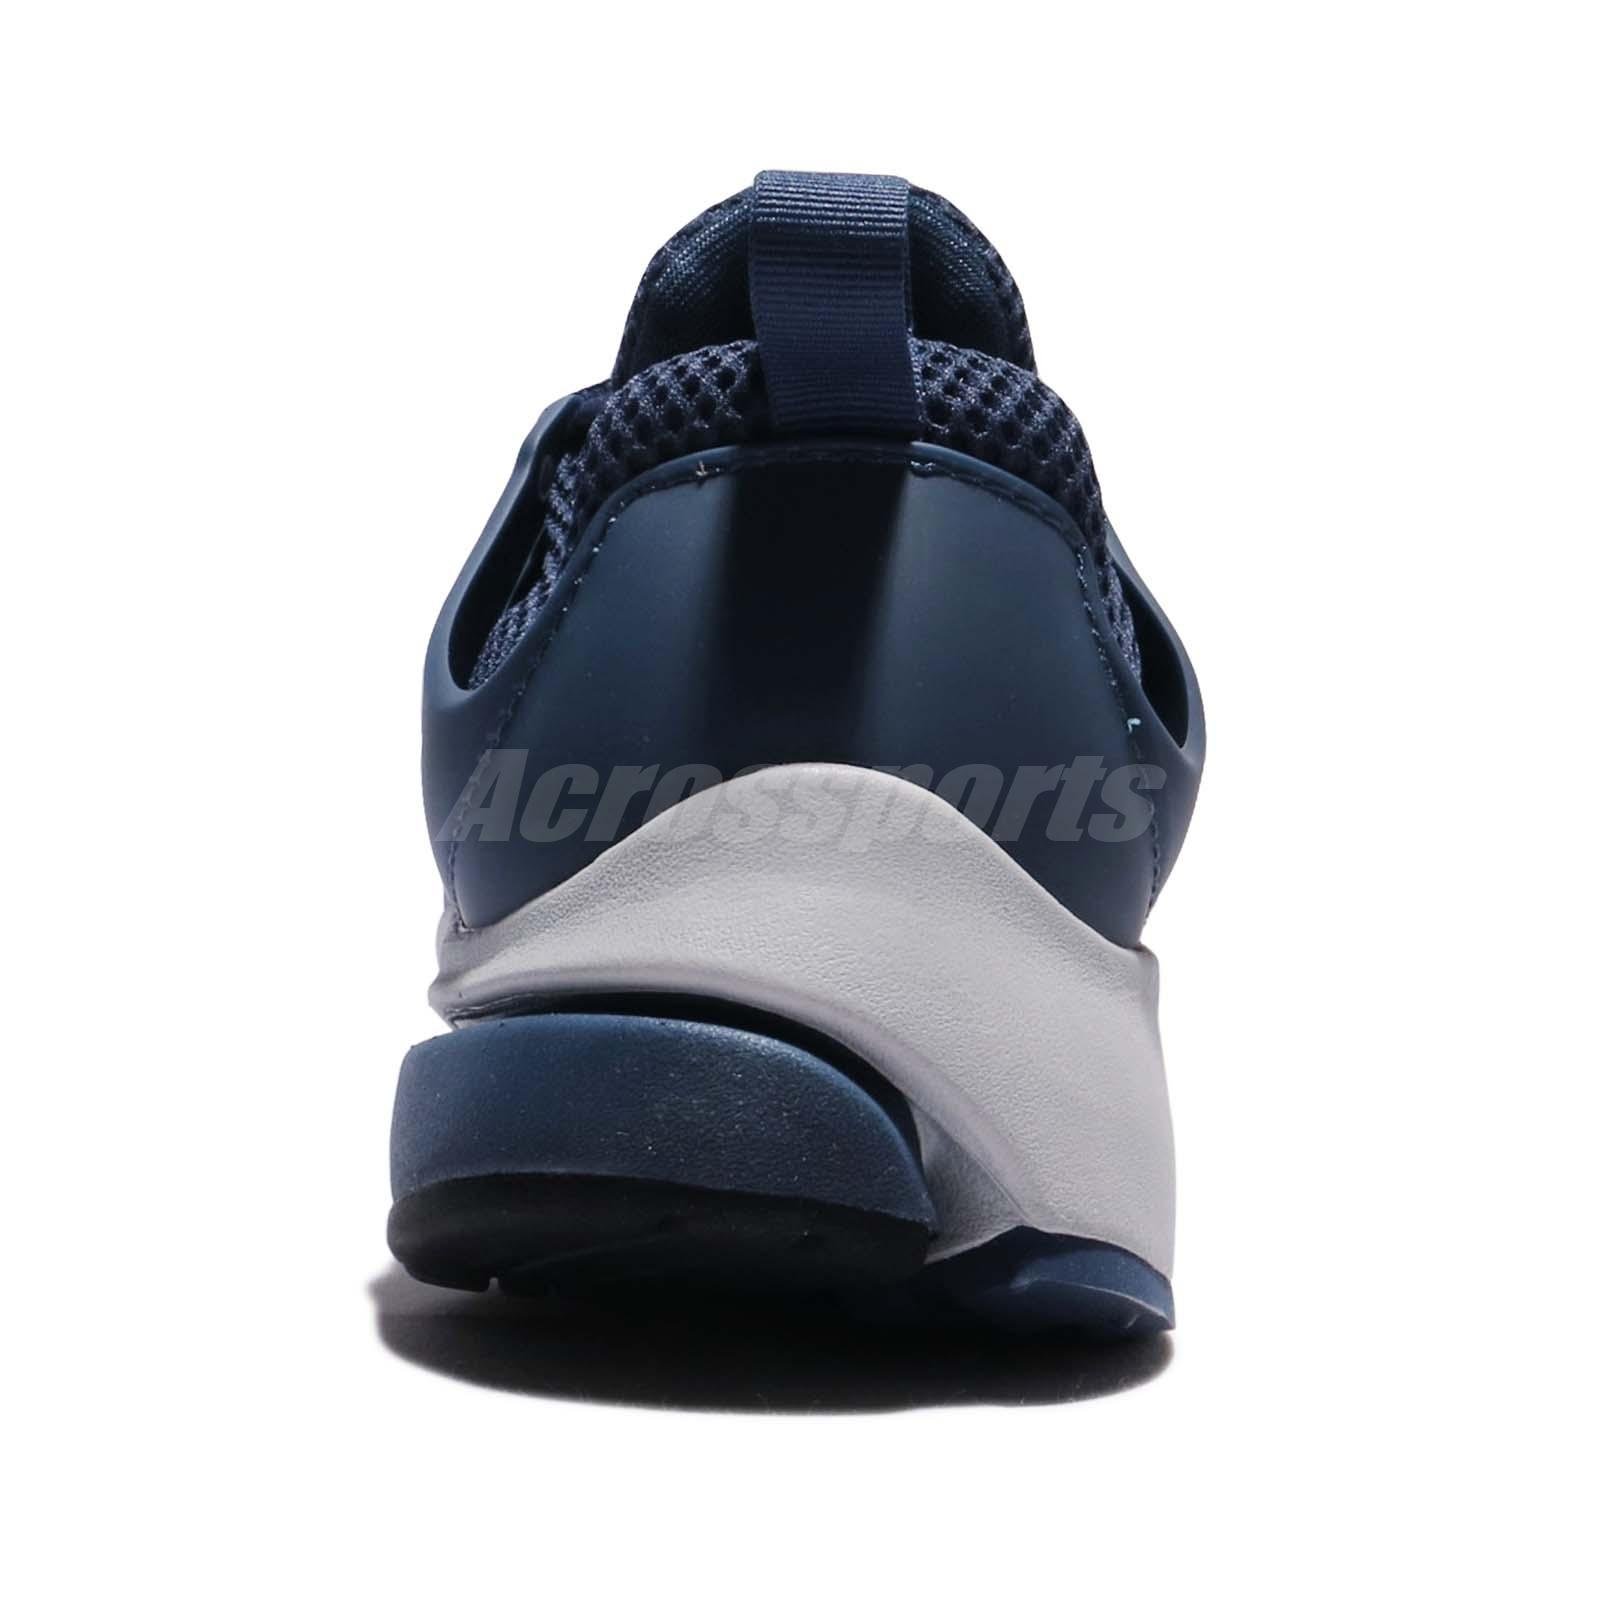 nice Chaussures ca335 b60d2 air presto 848187 402 lifestyle Chaussures nike